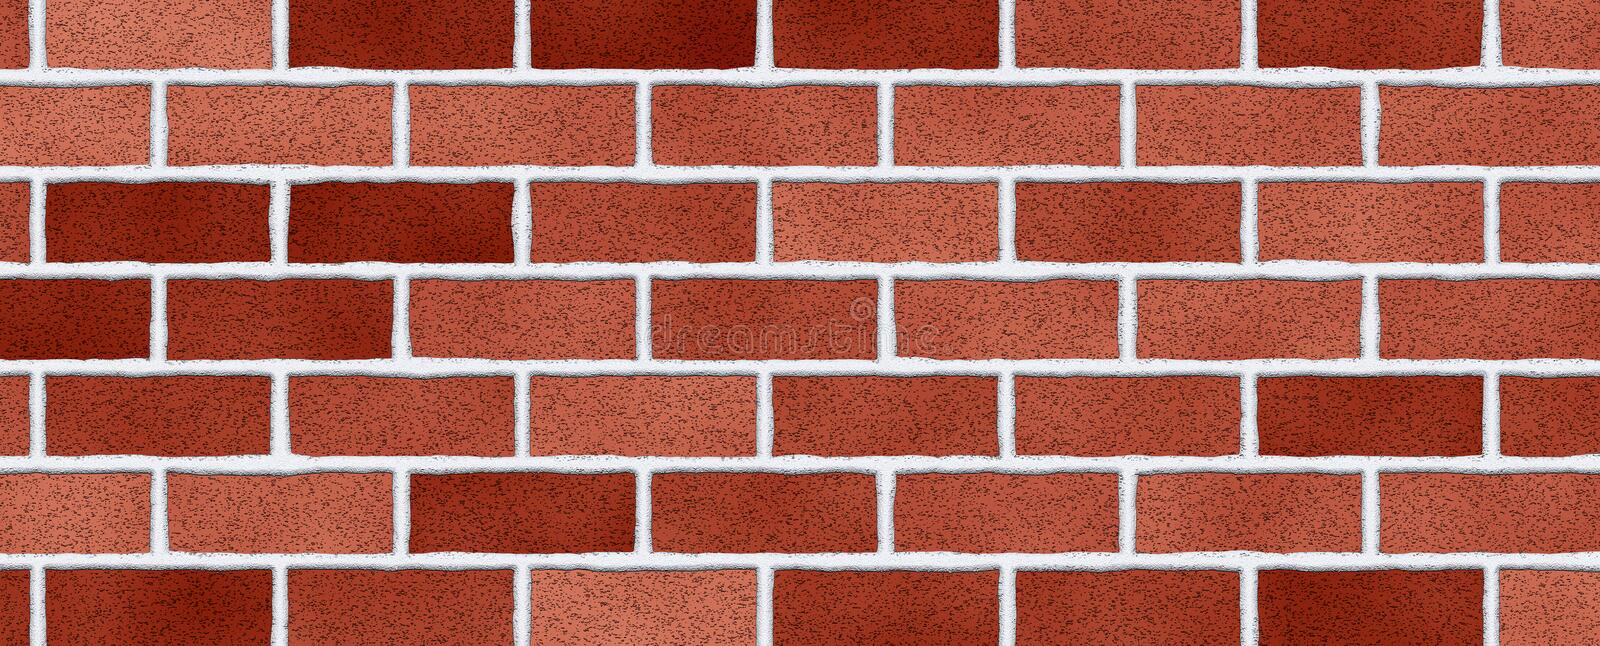 Red brick wall abstract background. Texture of bricks stock photo